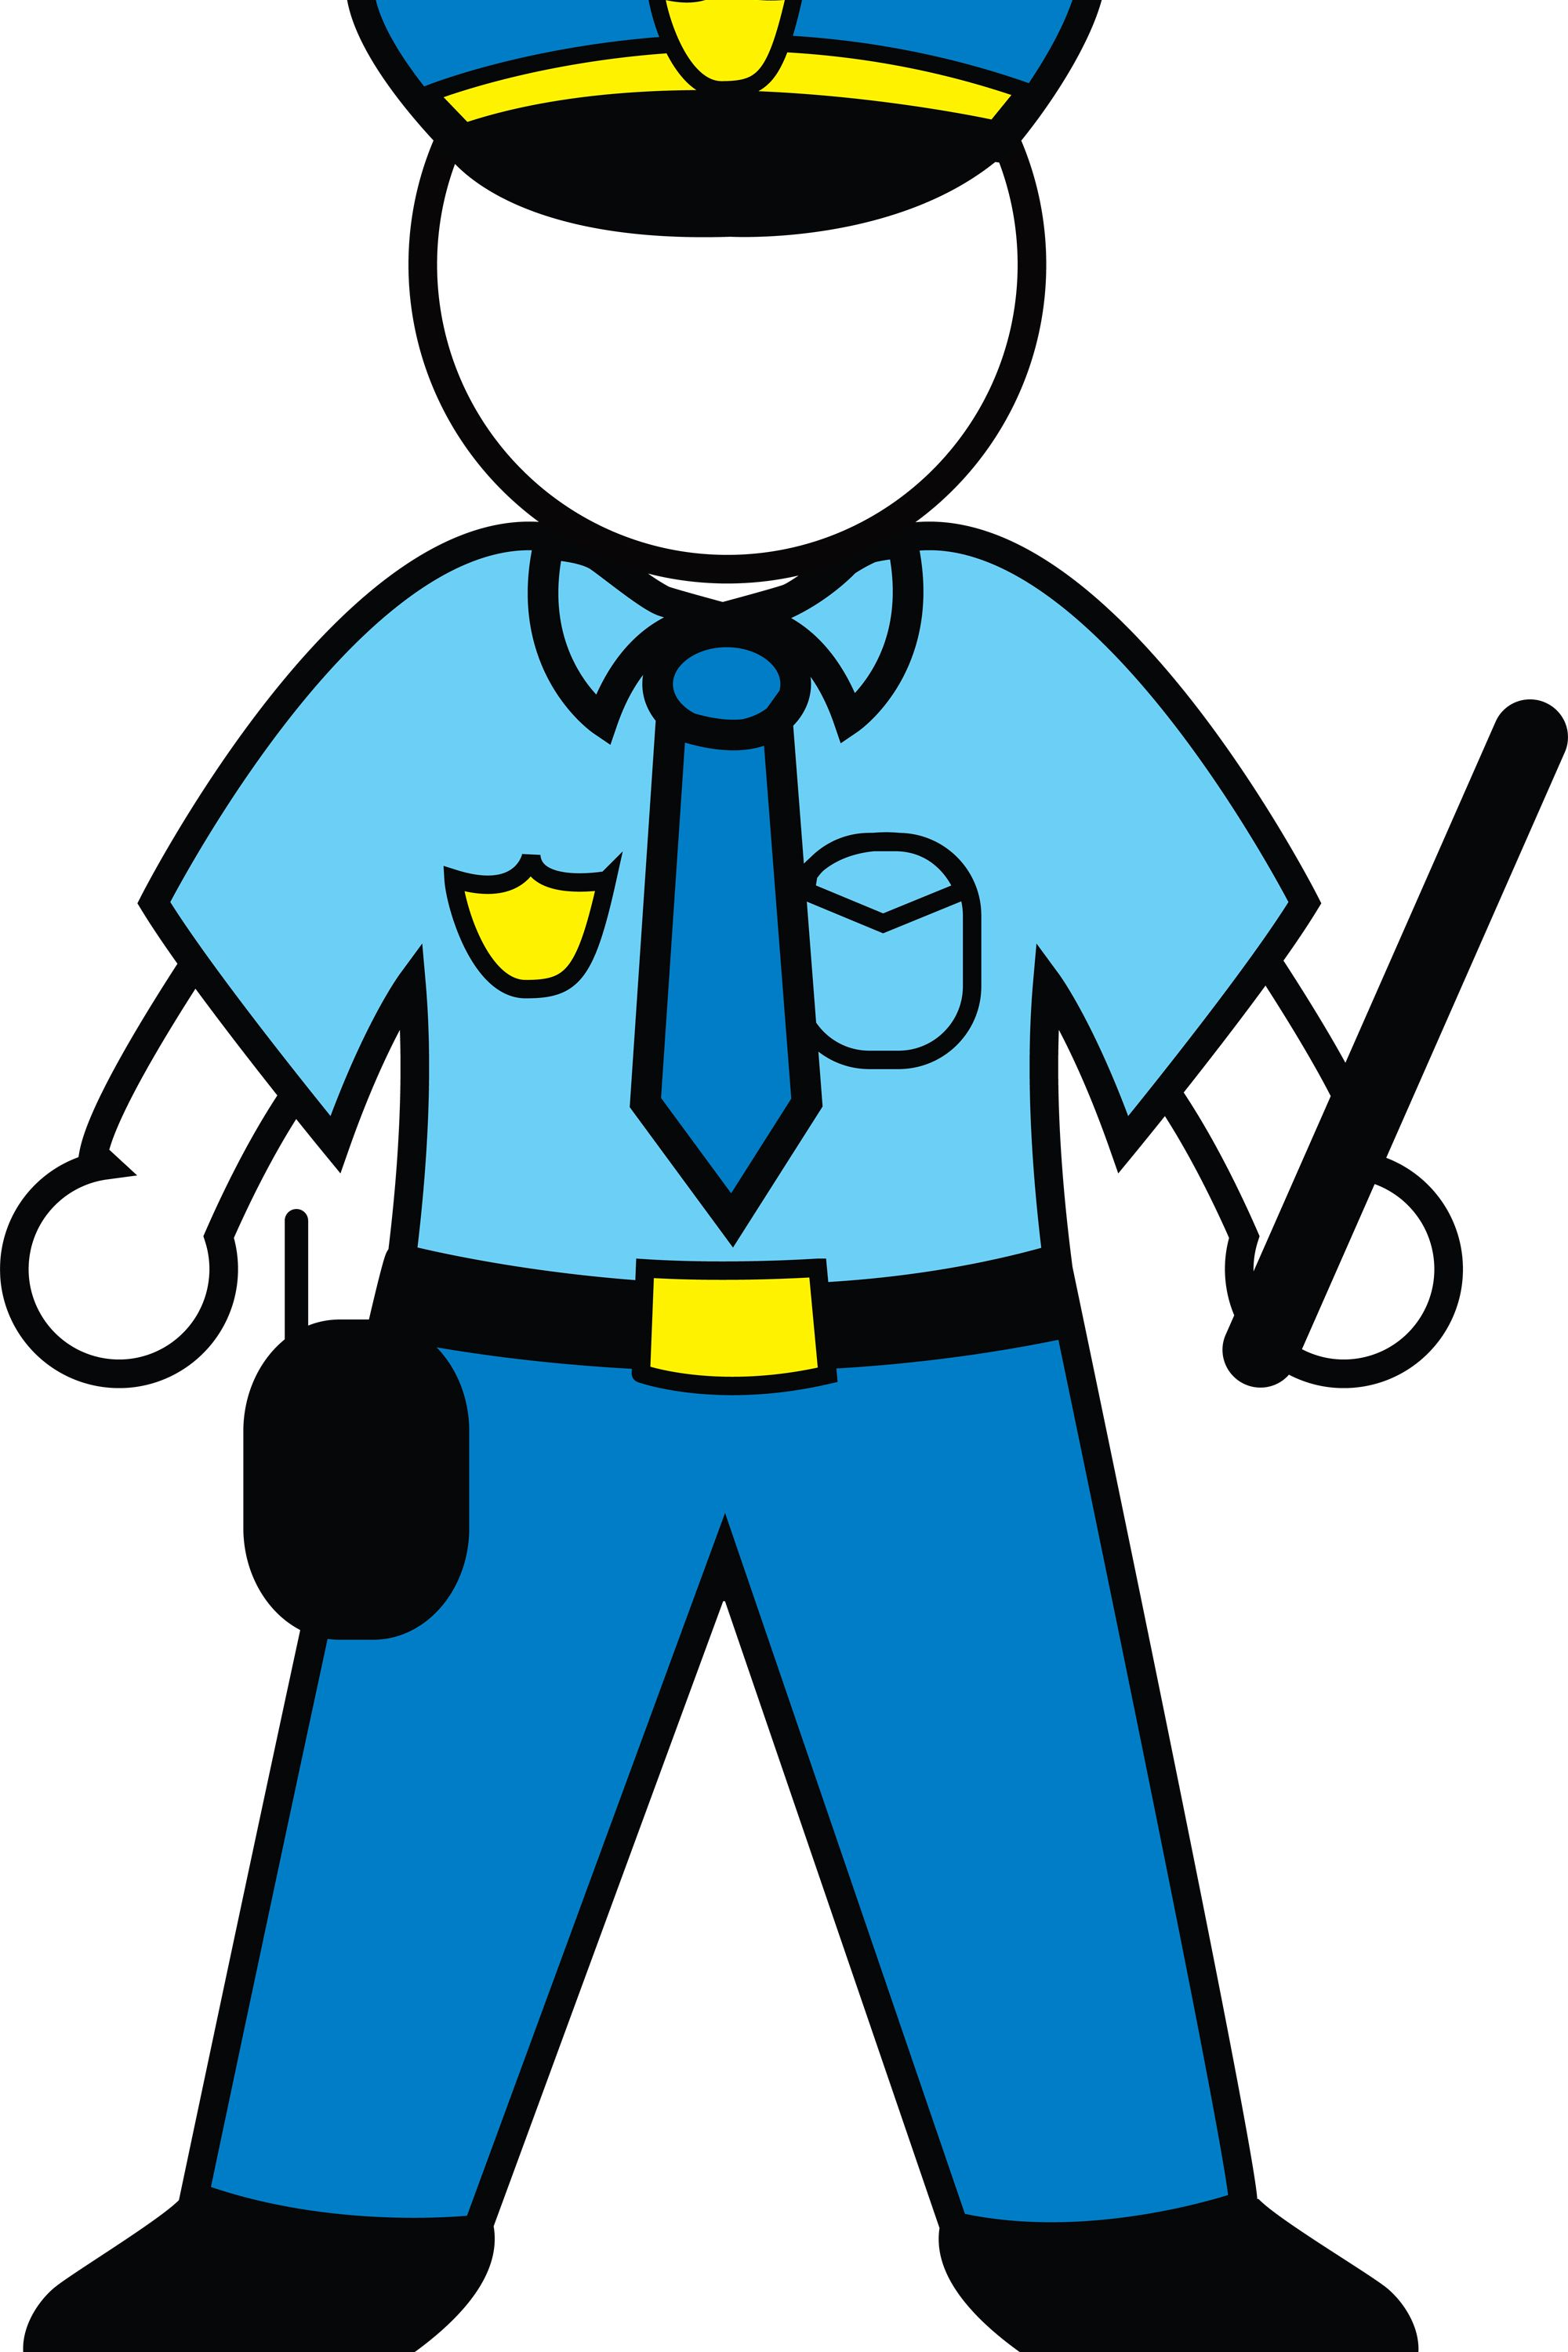 Police clipart customs officer Policeman Police Art Cartoon Custom